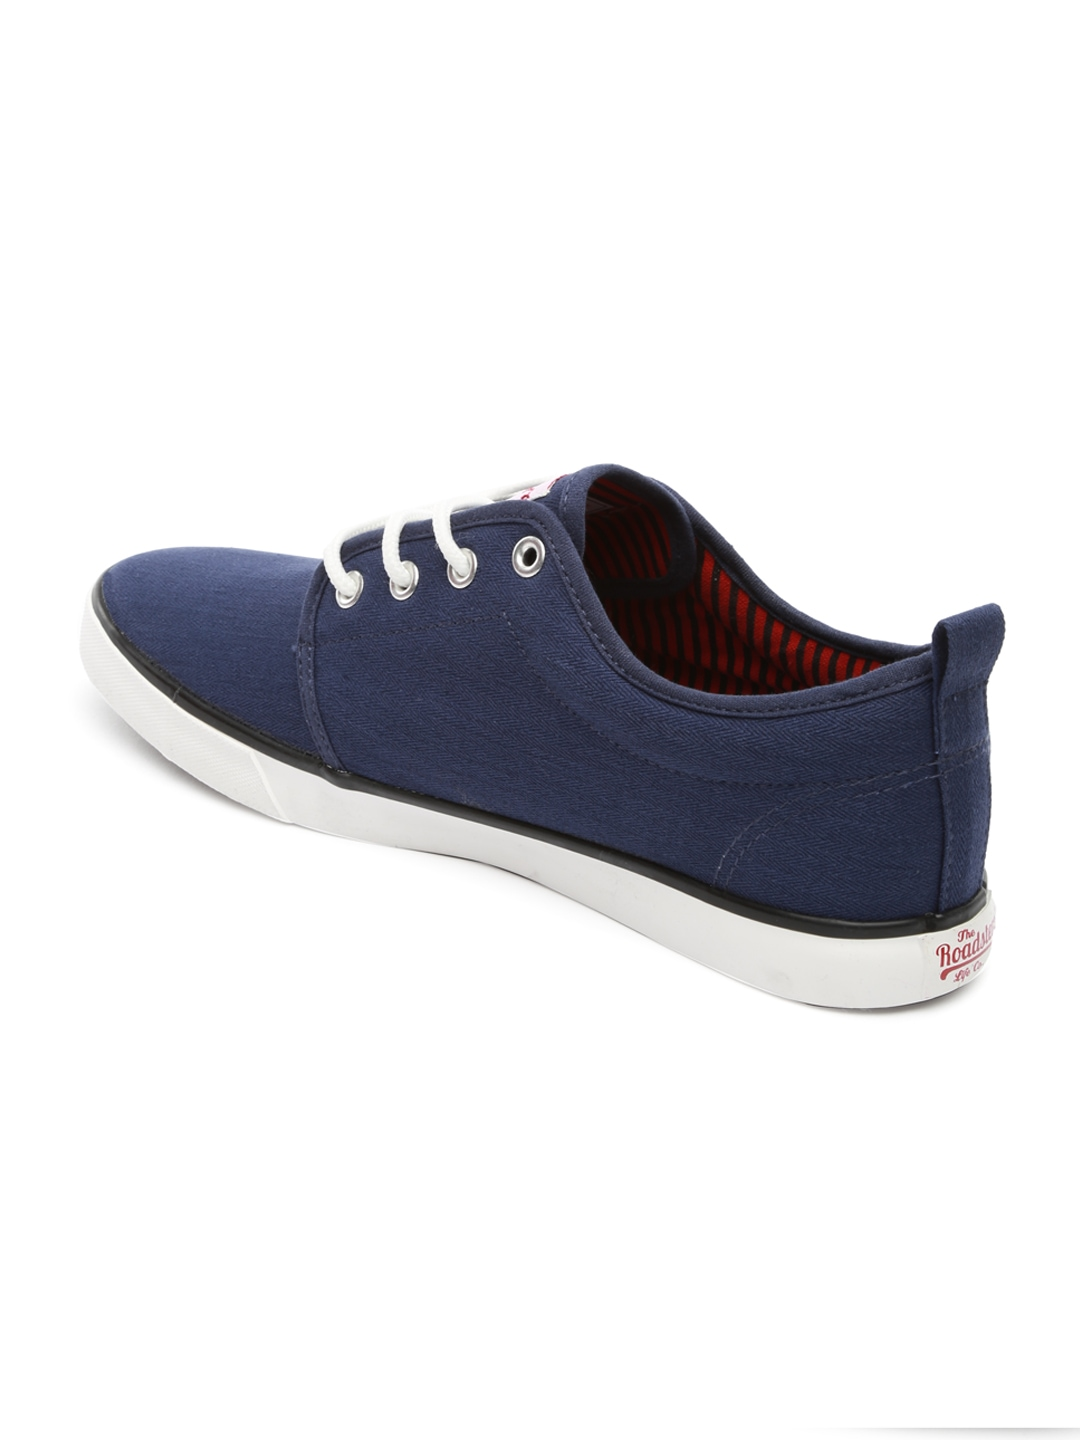 myntra roadster blue casual shoes 733616 buy myntra